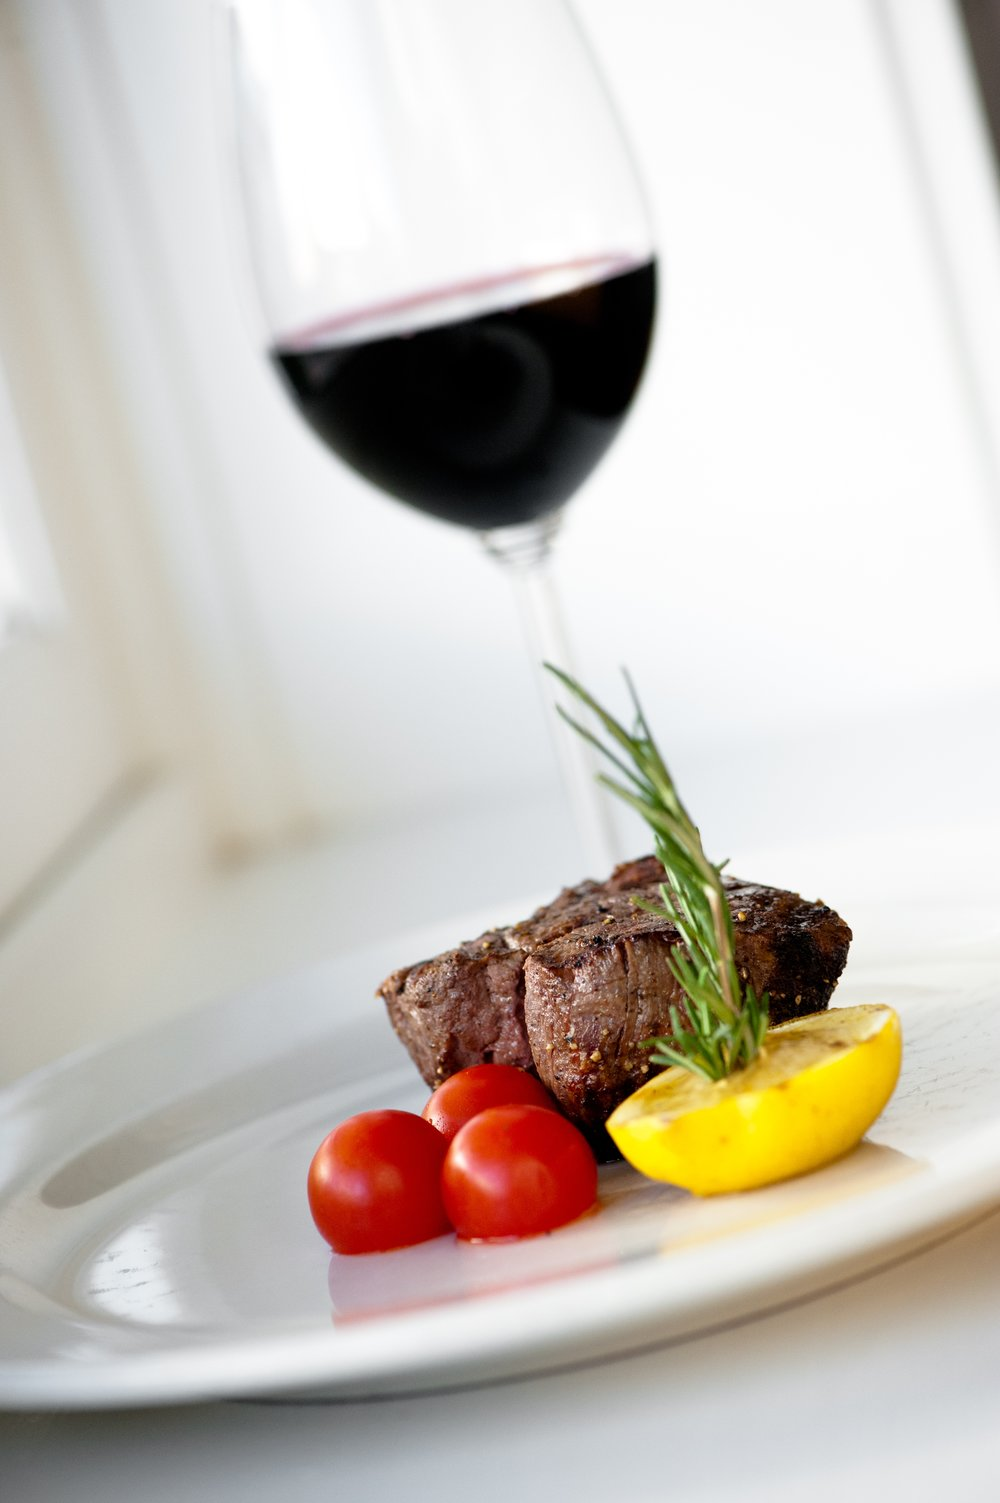 filet and wine.JPG